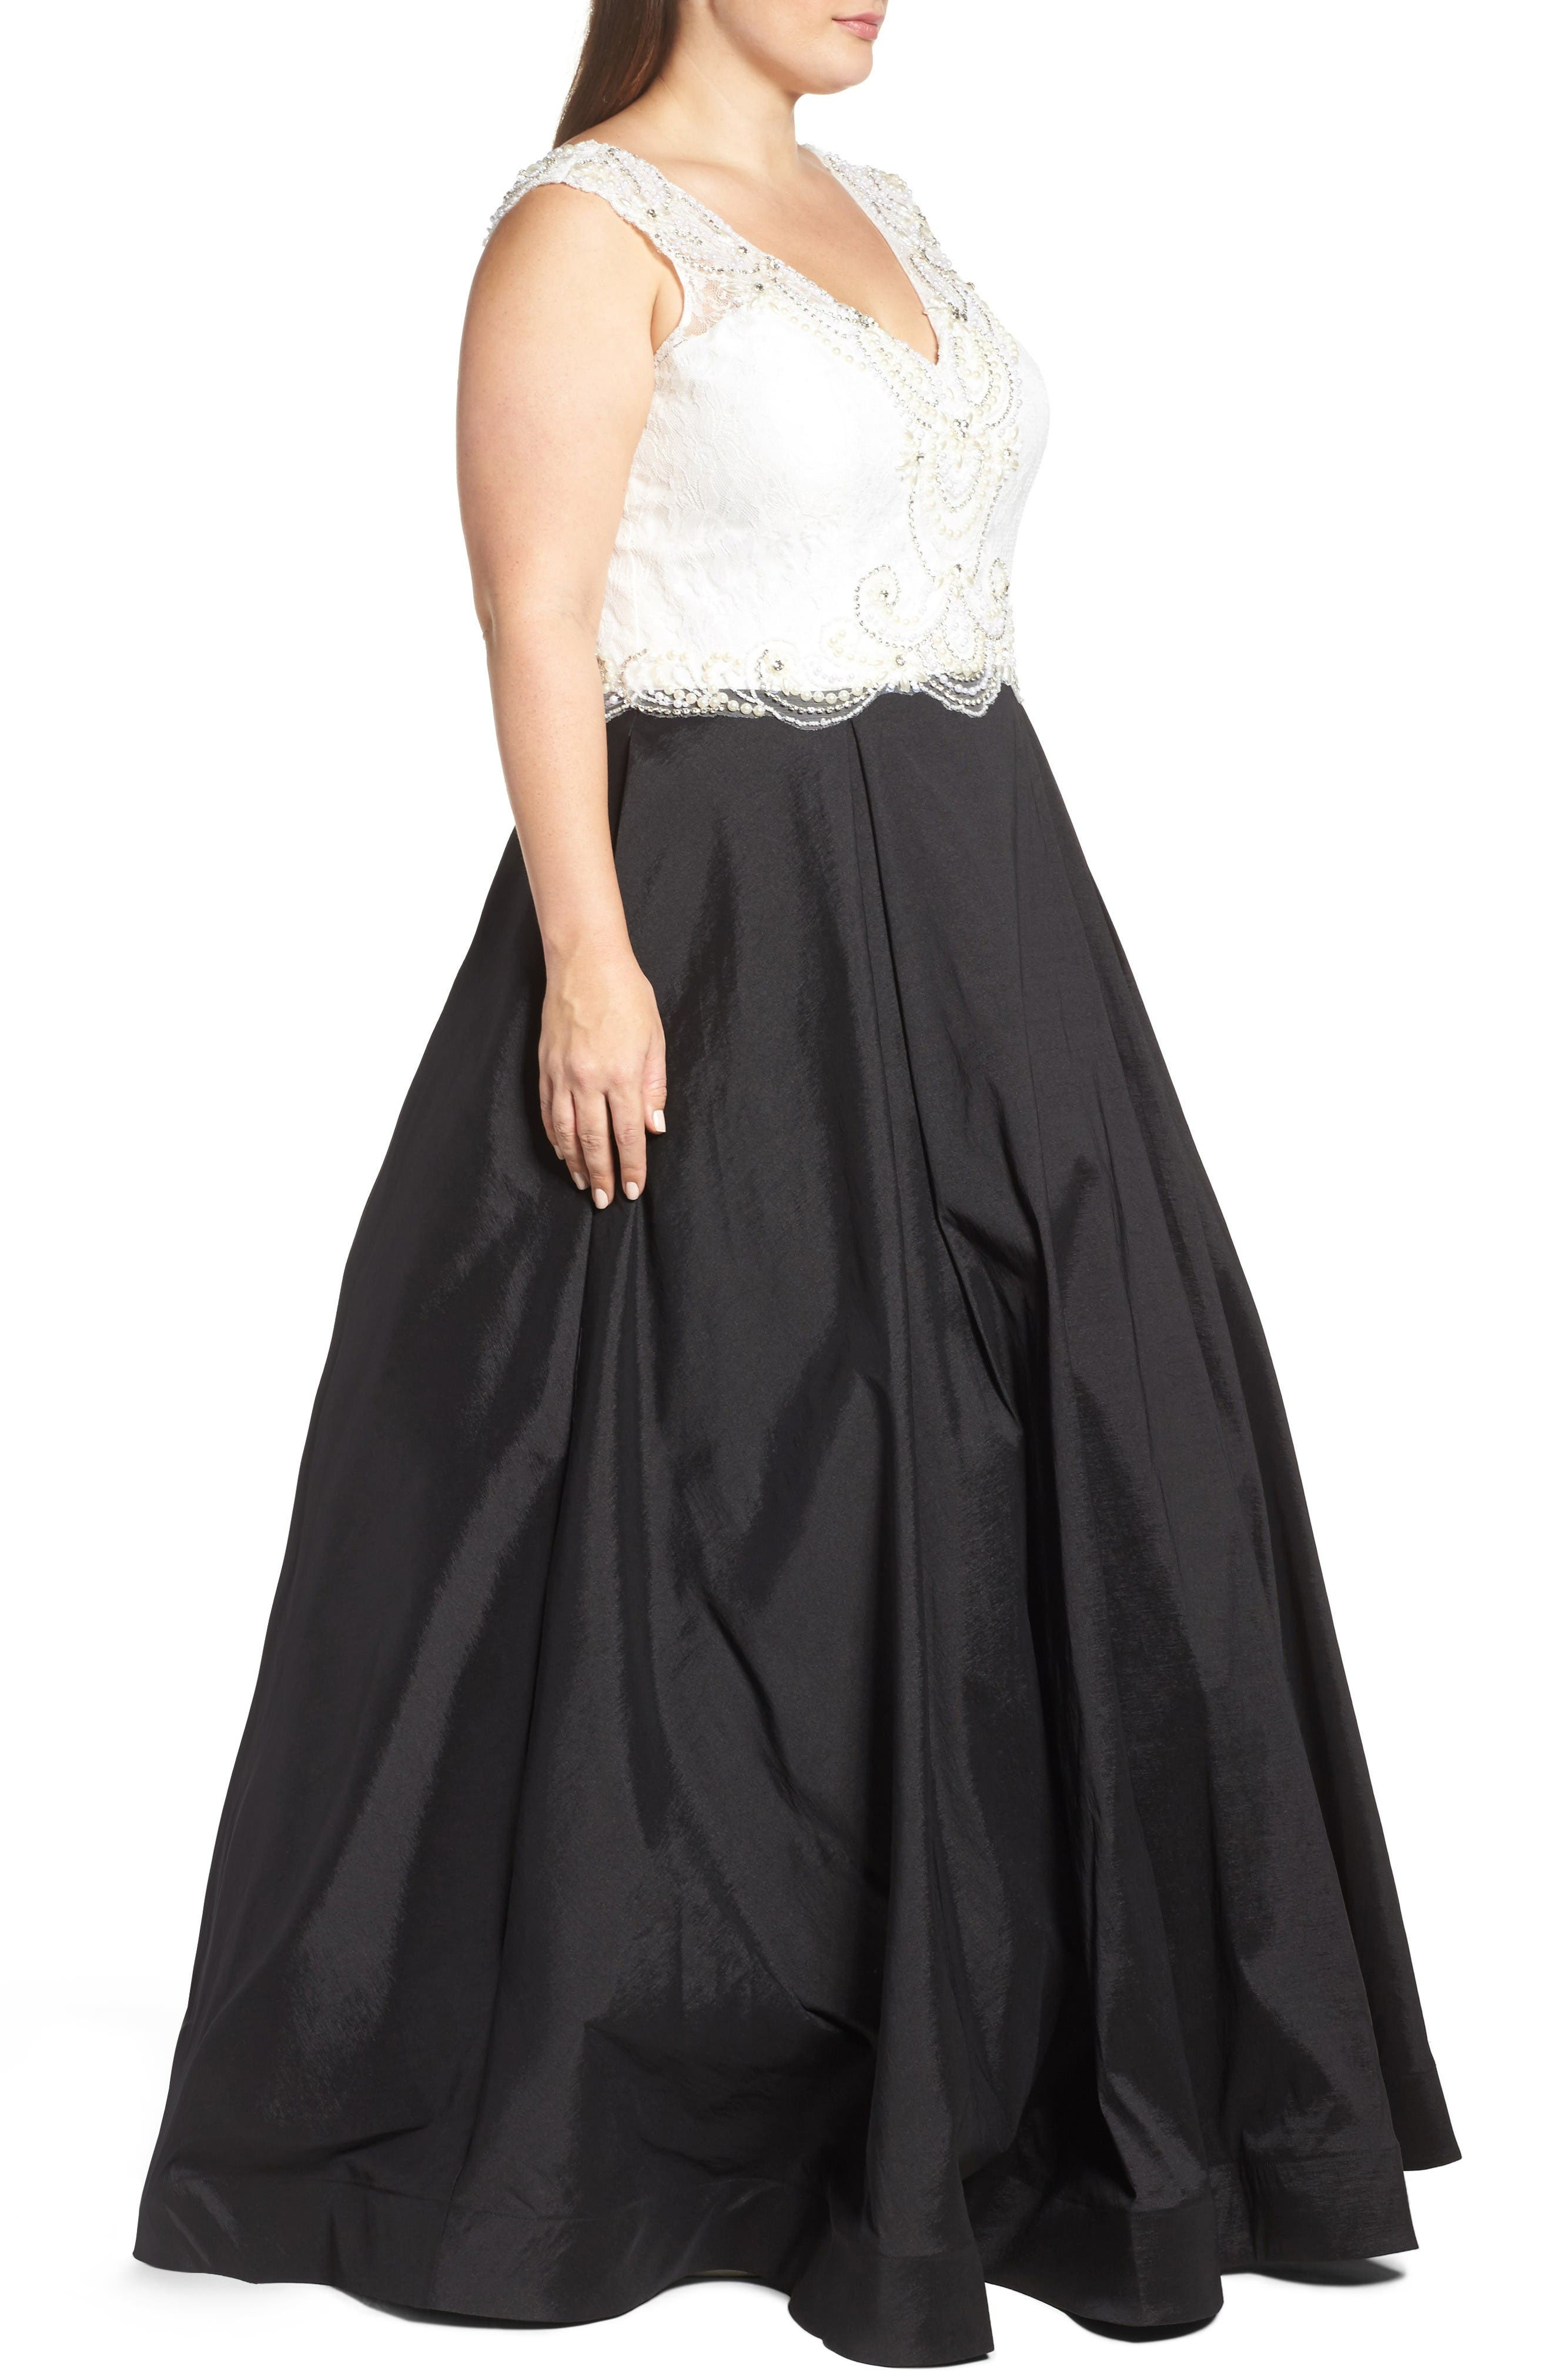 Embellished Lace & Taffeta Ballgown,                             Alternate thumbnail 3, color,                             Black White